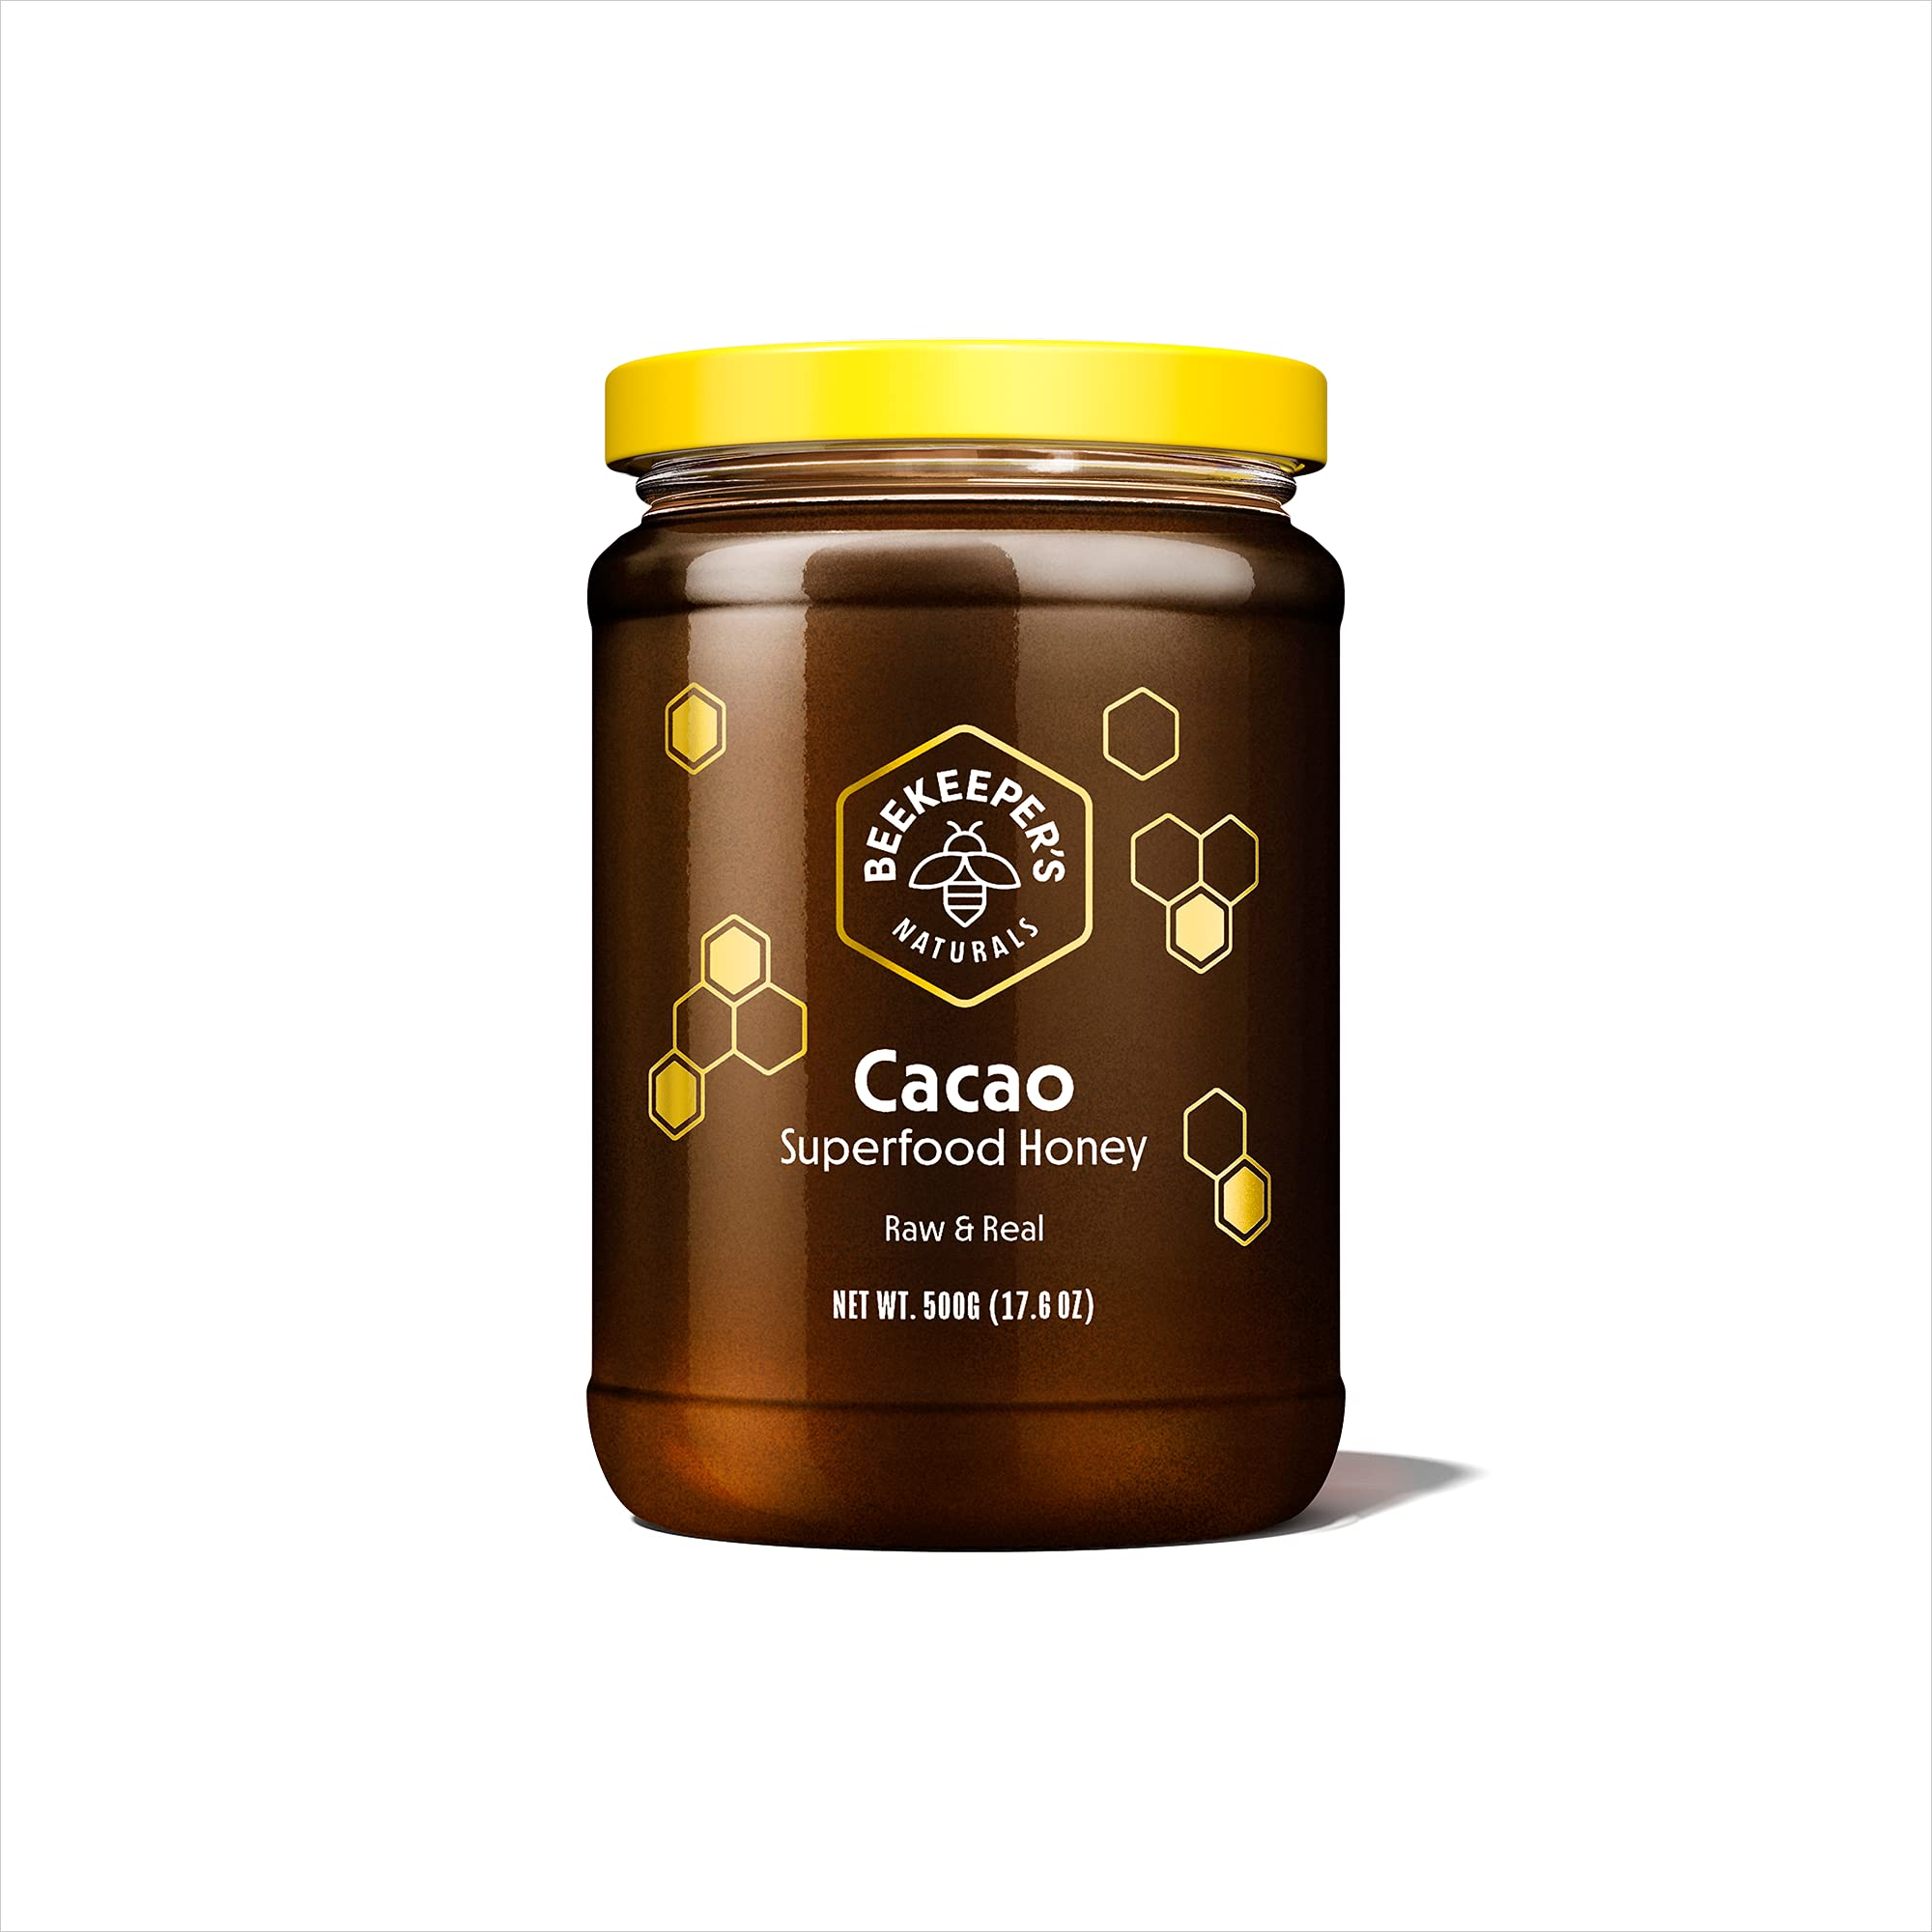 Beekeeper's Naturals Superfood Cacao Honey - Raw Honey with Organic, Raw Ecuadorian Cacao, Filled with Antioxidants, Iron and Calcium - Paleo-Friendly, Gluten, Dairy, Egg & Sugar Free (1.1lbs)